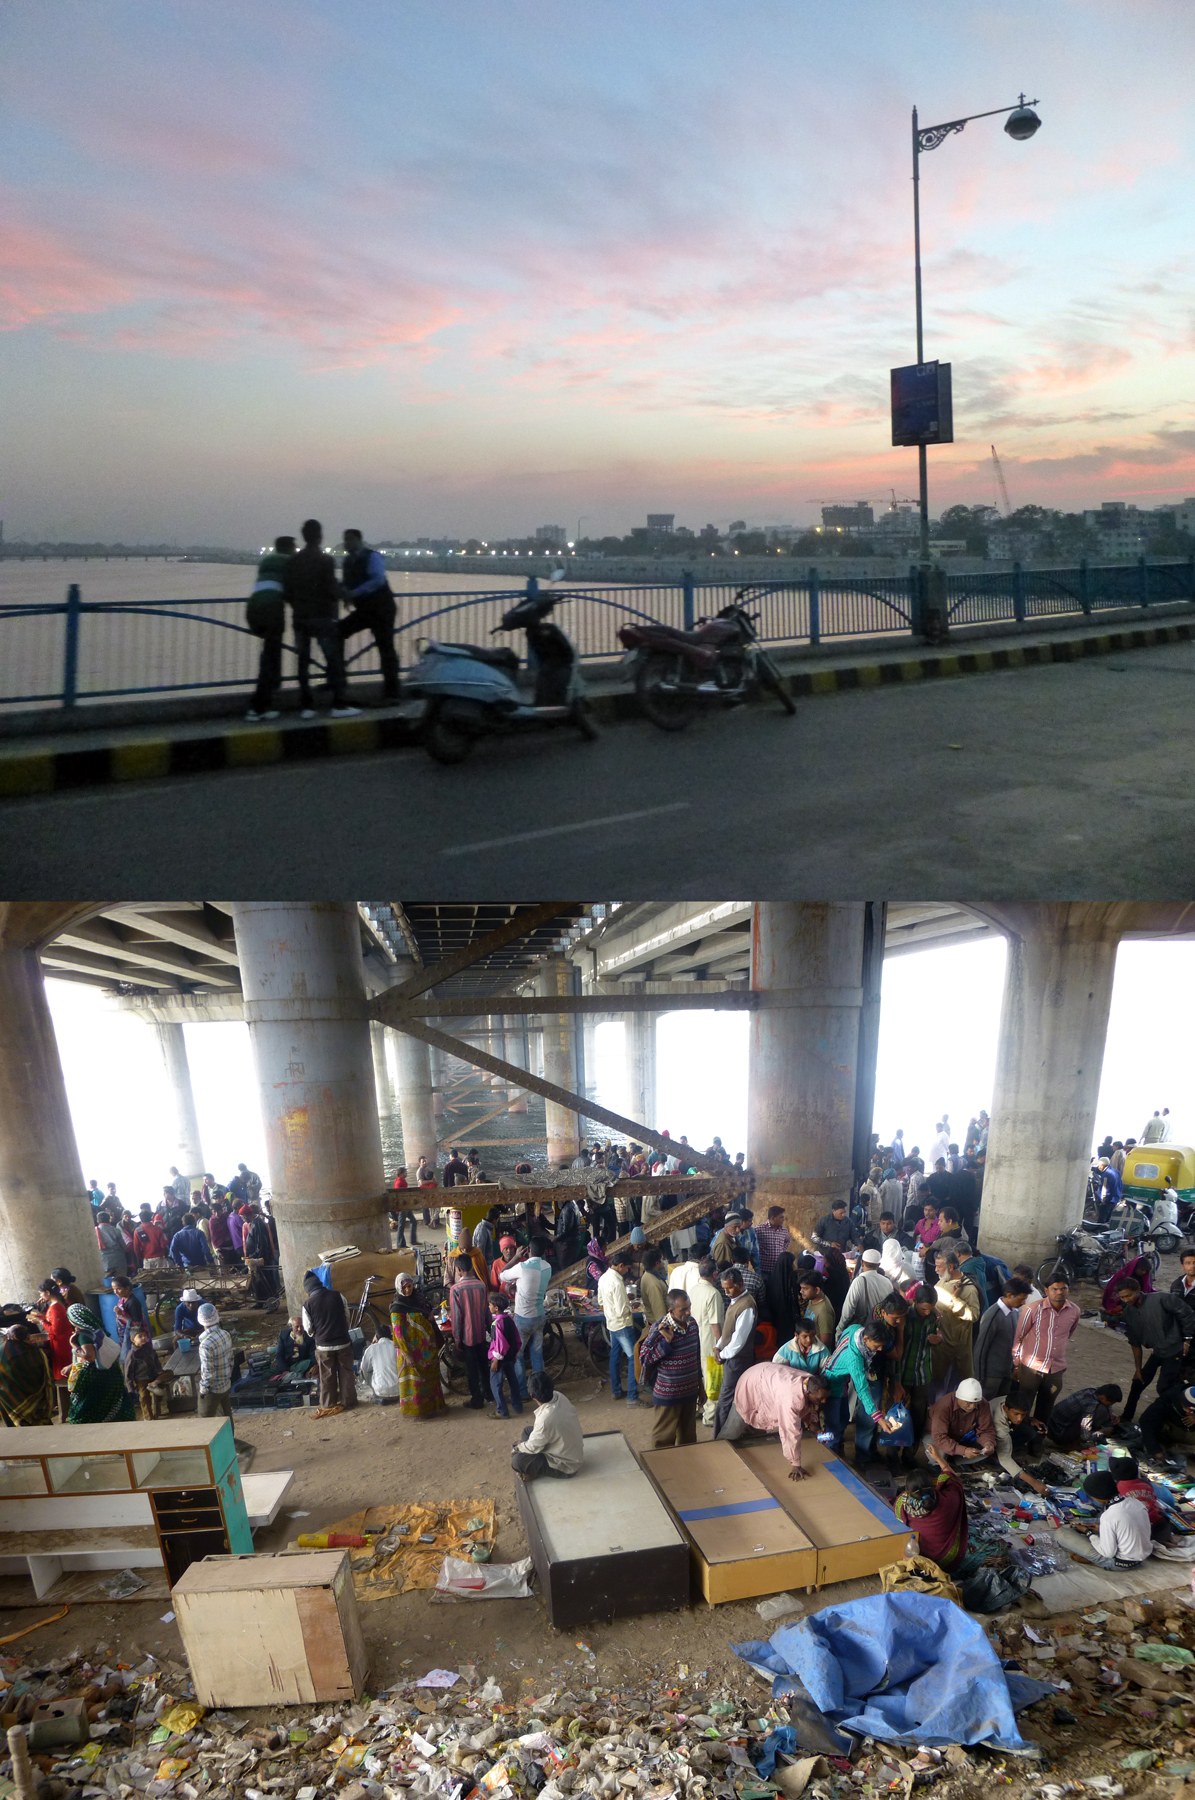 The city's bridges - places for meeting above and for markets below